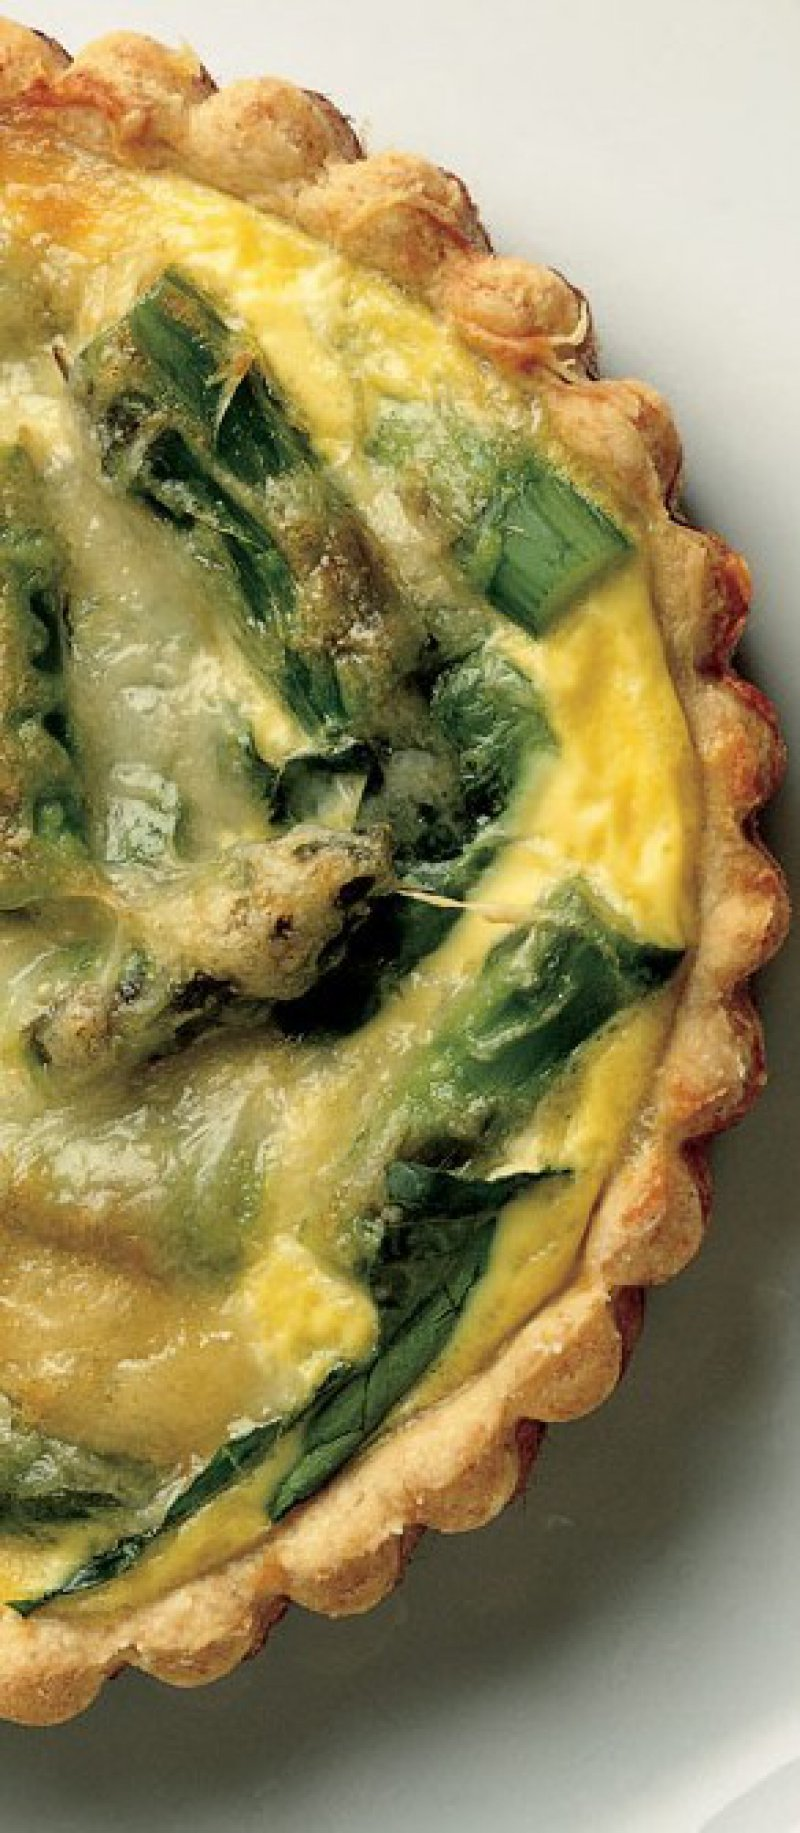 Tarte with Asparagus and Chicken Mousse